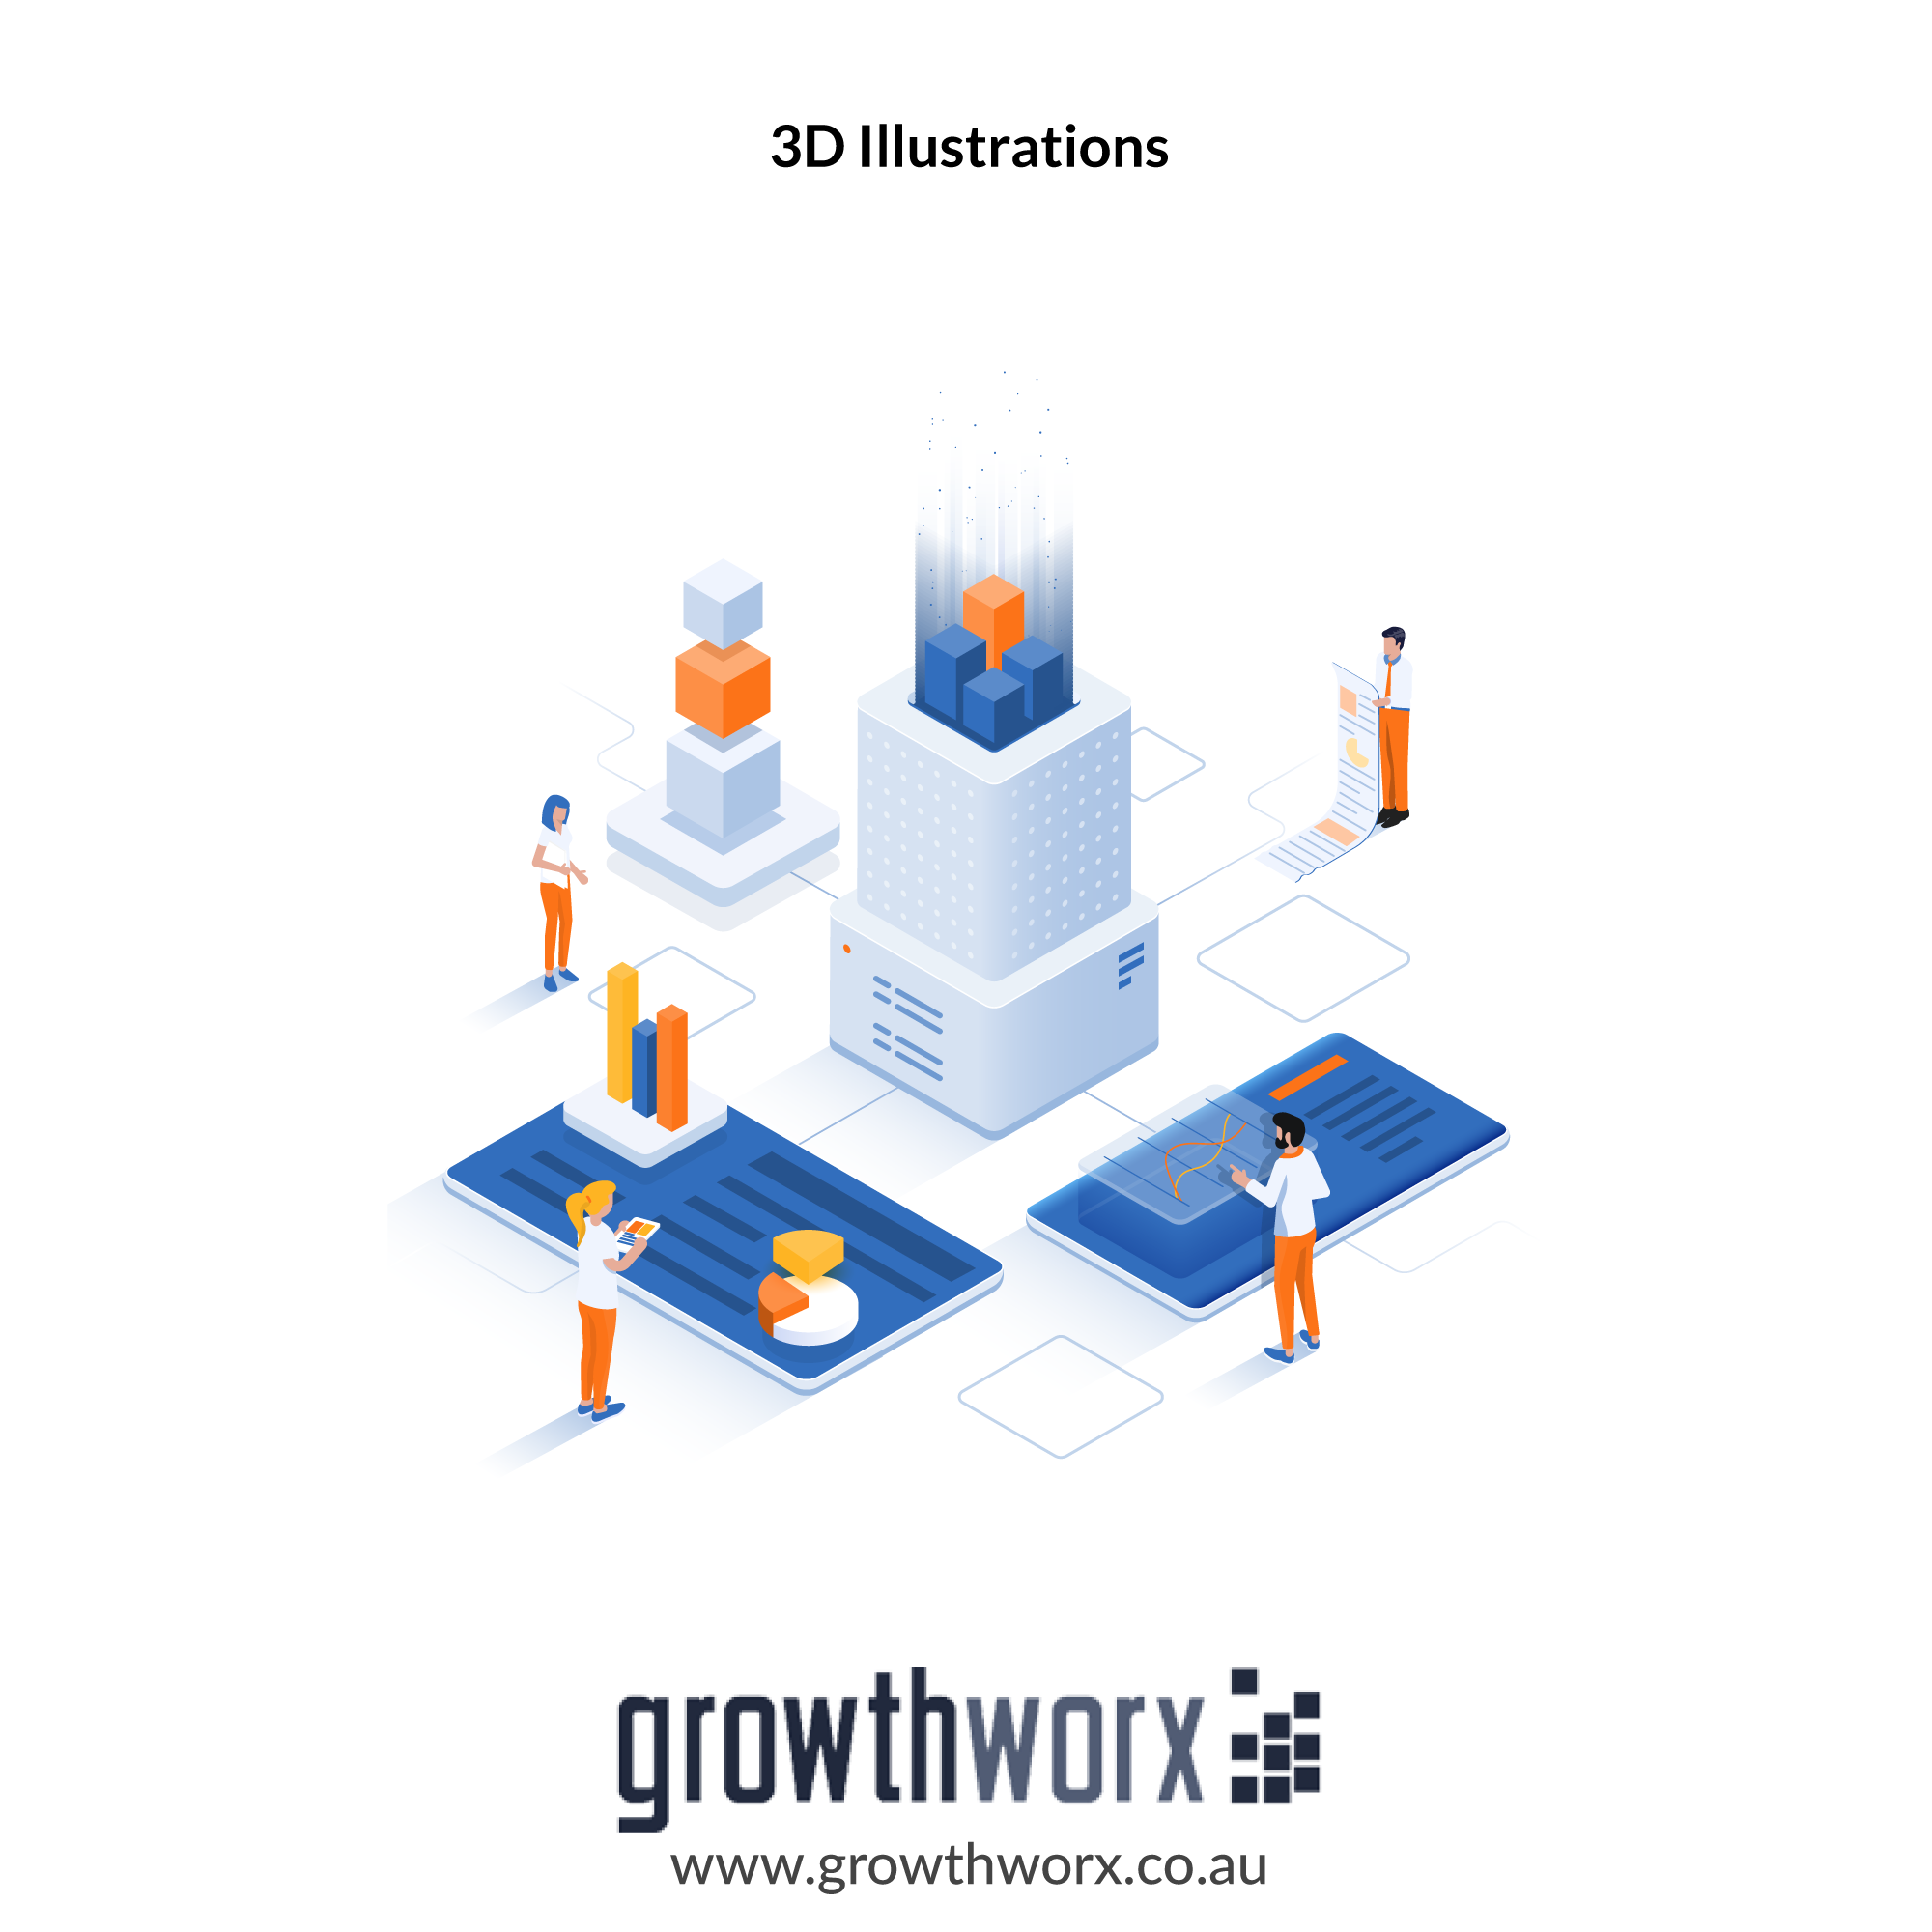 I will design an isometric illustration or logo for you in 3d 1